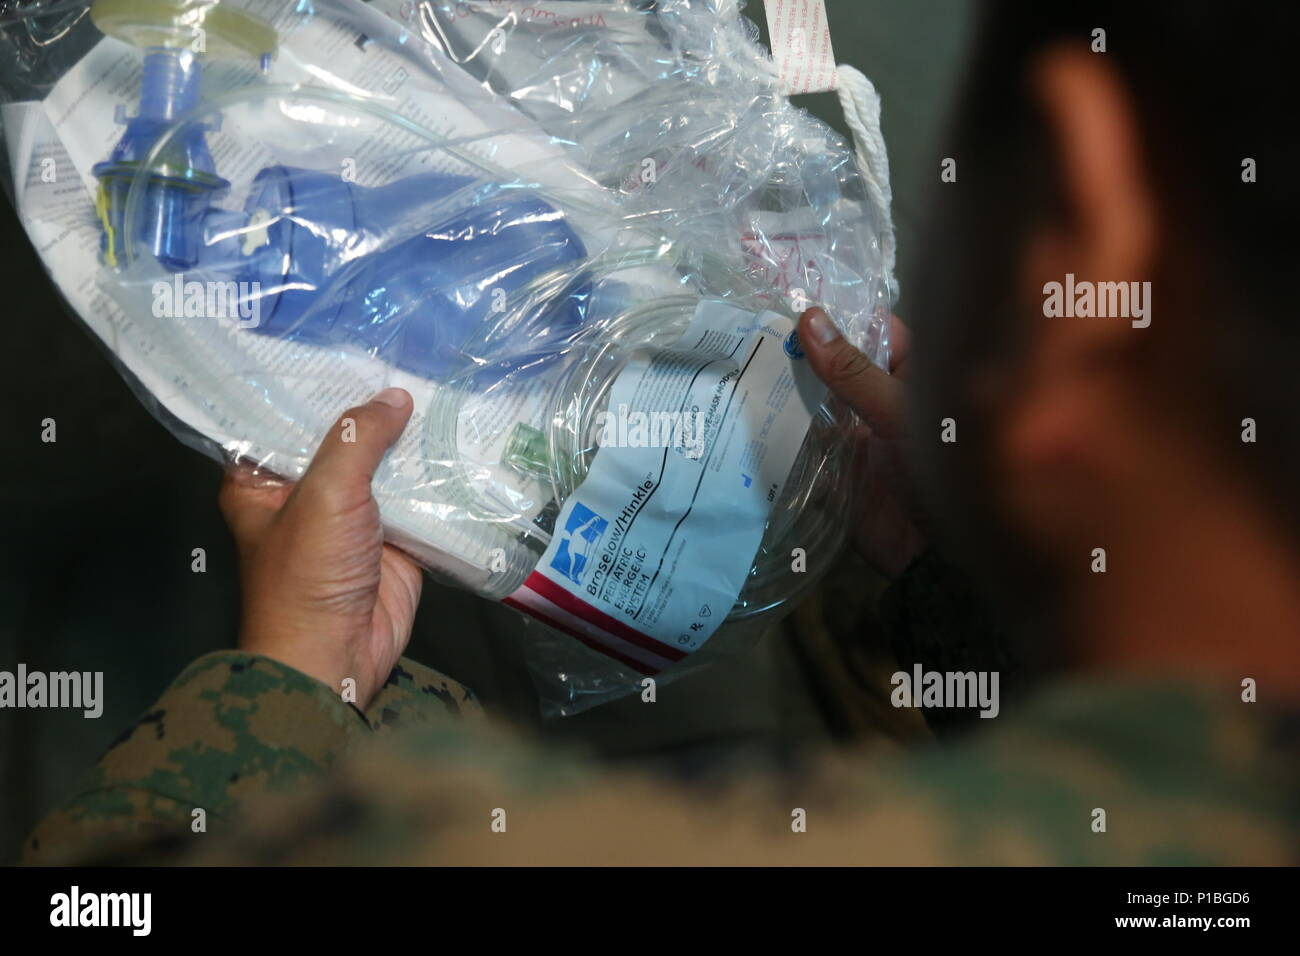 A U.S. Sailor with Shock Trauma Platoon, Combat Logistics Battalion 31, 31st Marine Expeditionary Unit, inspects a pediatric bag valve mask, a medical instrument used in cases of pediatric respiratory failure, during pediatric malady training as part of Amphibious Landing Exercise 33 (PHIBLEX 33) at Col. Ernesto Ravina Air Base, Philippines, Oct. 8, 2016. Shock Trauma Plt. conducted the training during PHIBLEX 33 to prepare its Sailors to treat child patients. PHIBLEX 33 is an annual U.S.-Philippine military bilateral exercise that combines amphibious capabilities and live-fire training with h - Stock Image